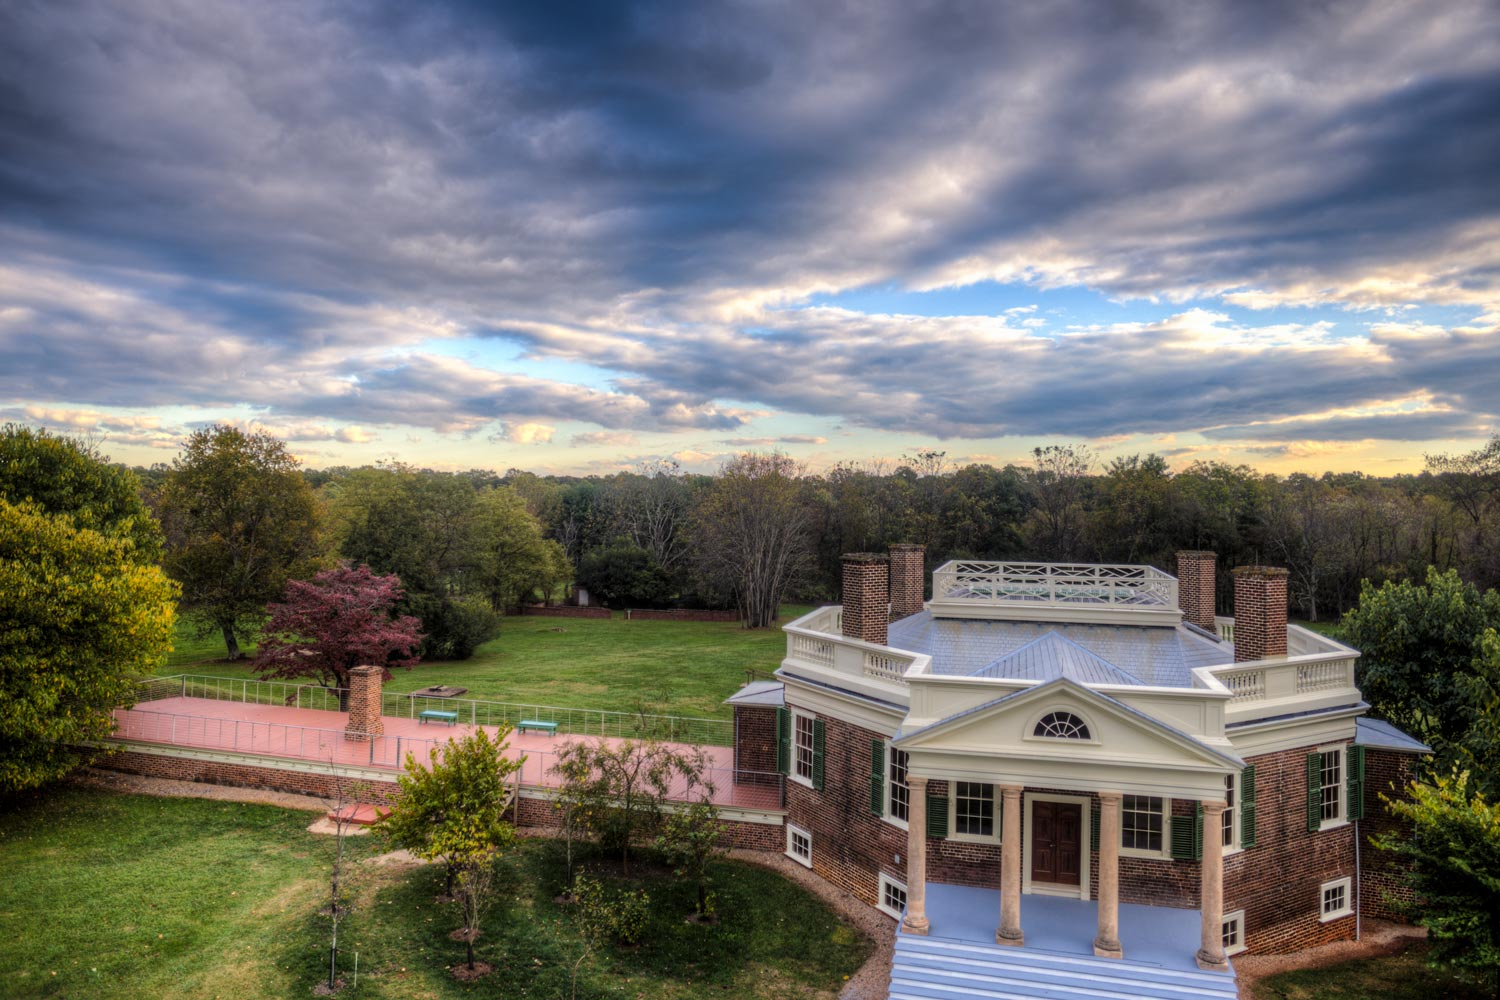 Jefferson designed Poplar Forest as a peaceful getaway from the bustle of his work at Monticello and in Washington.